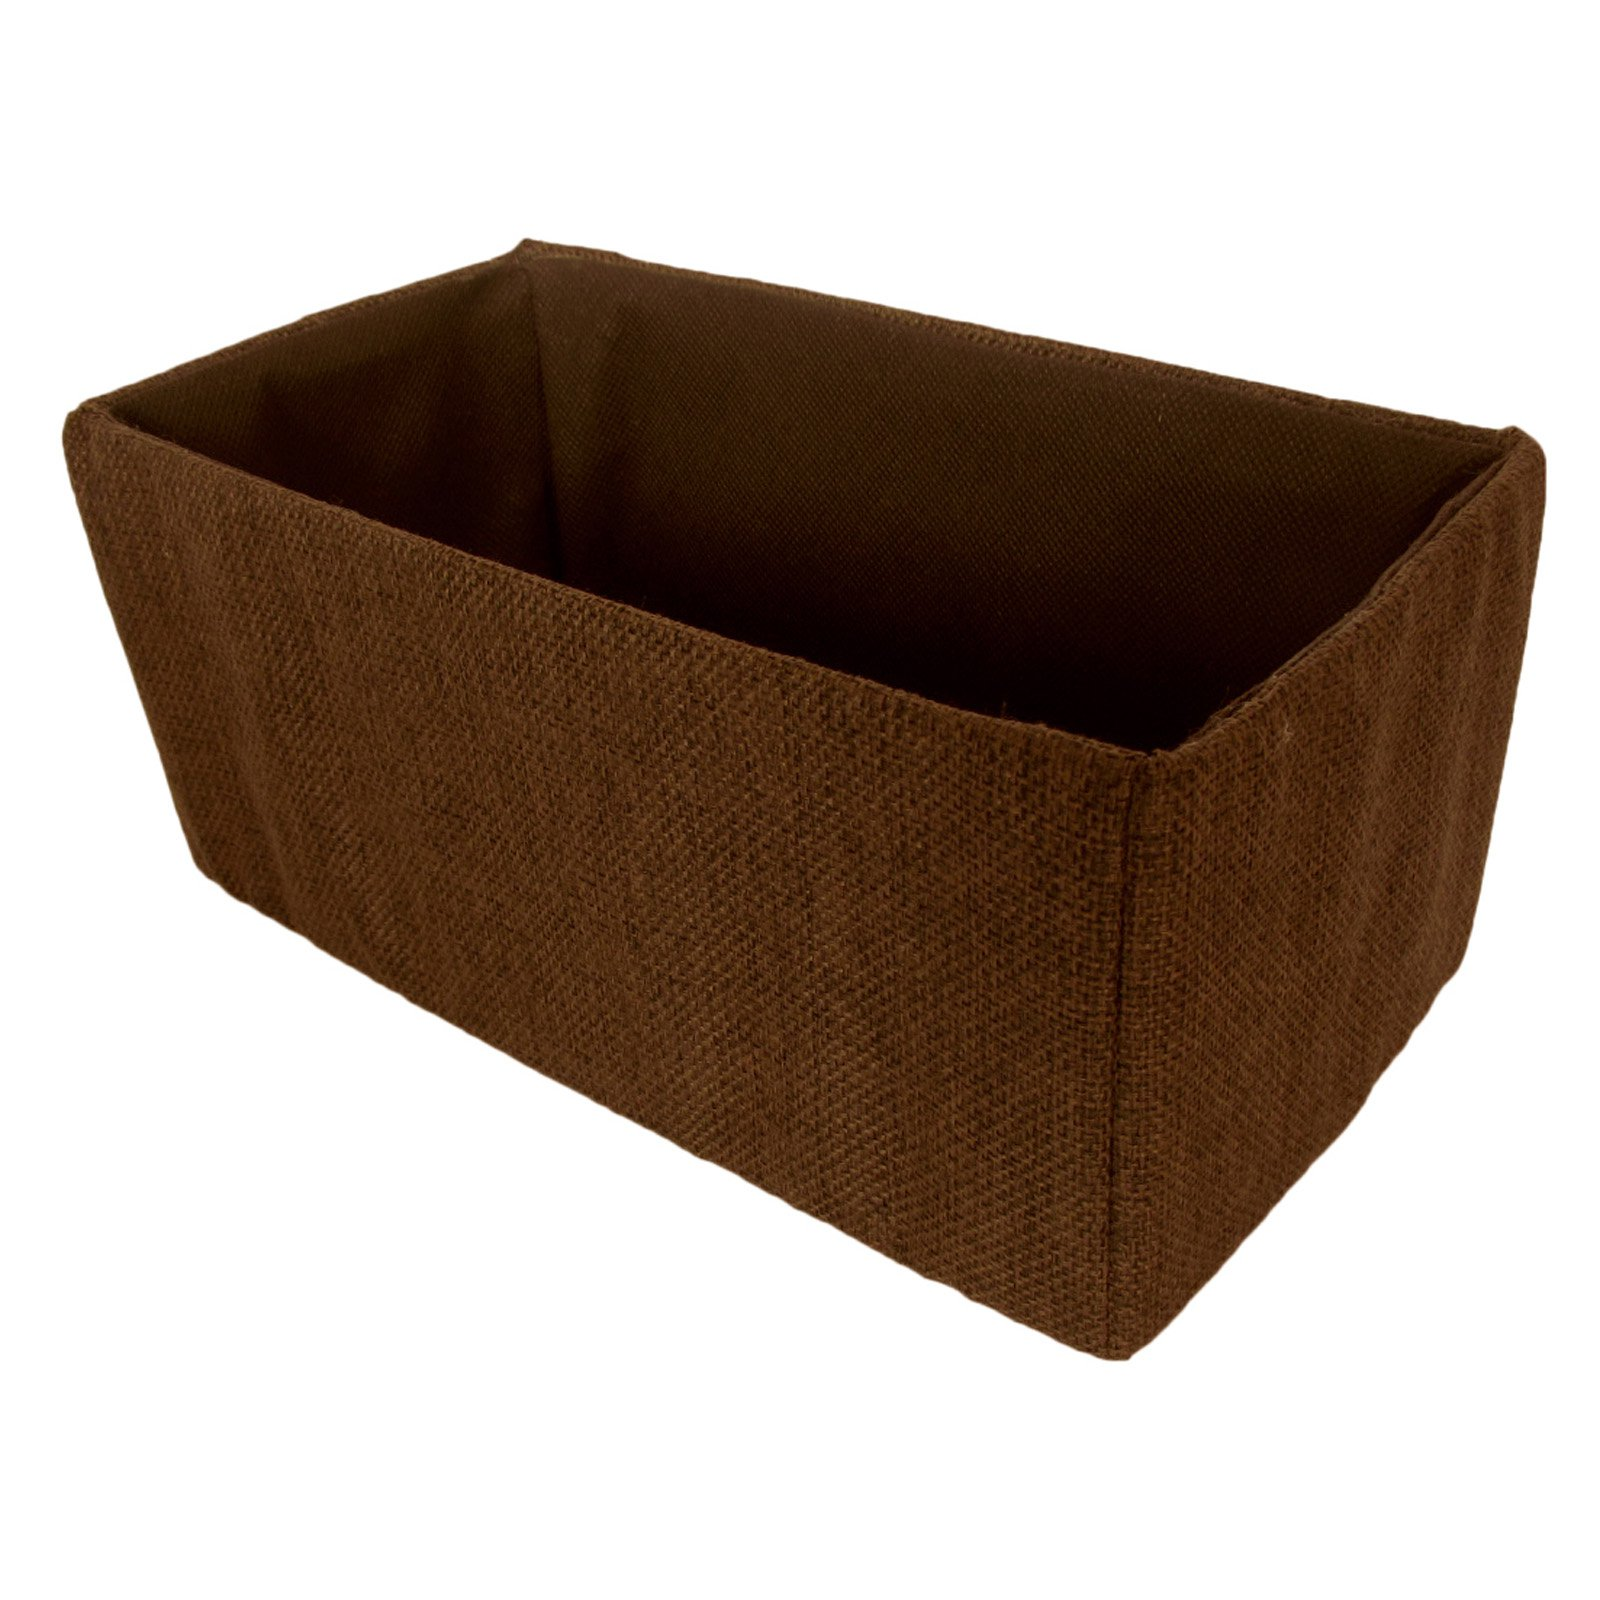 Wald Import Woven Double Collapsible Storage Bin